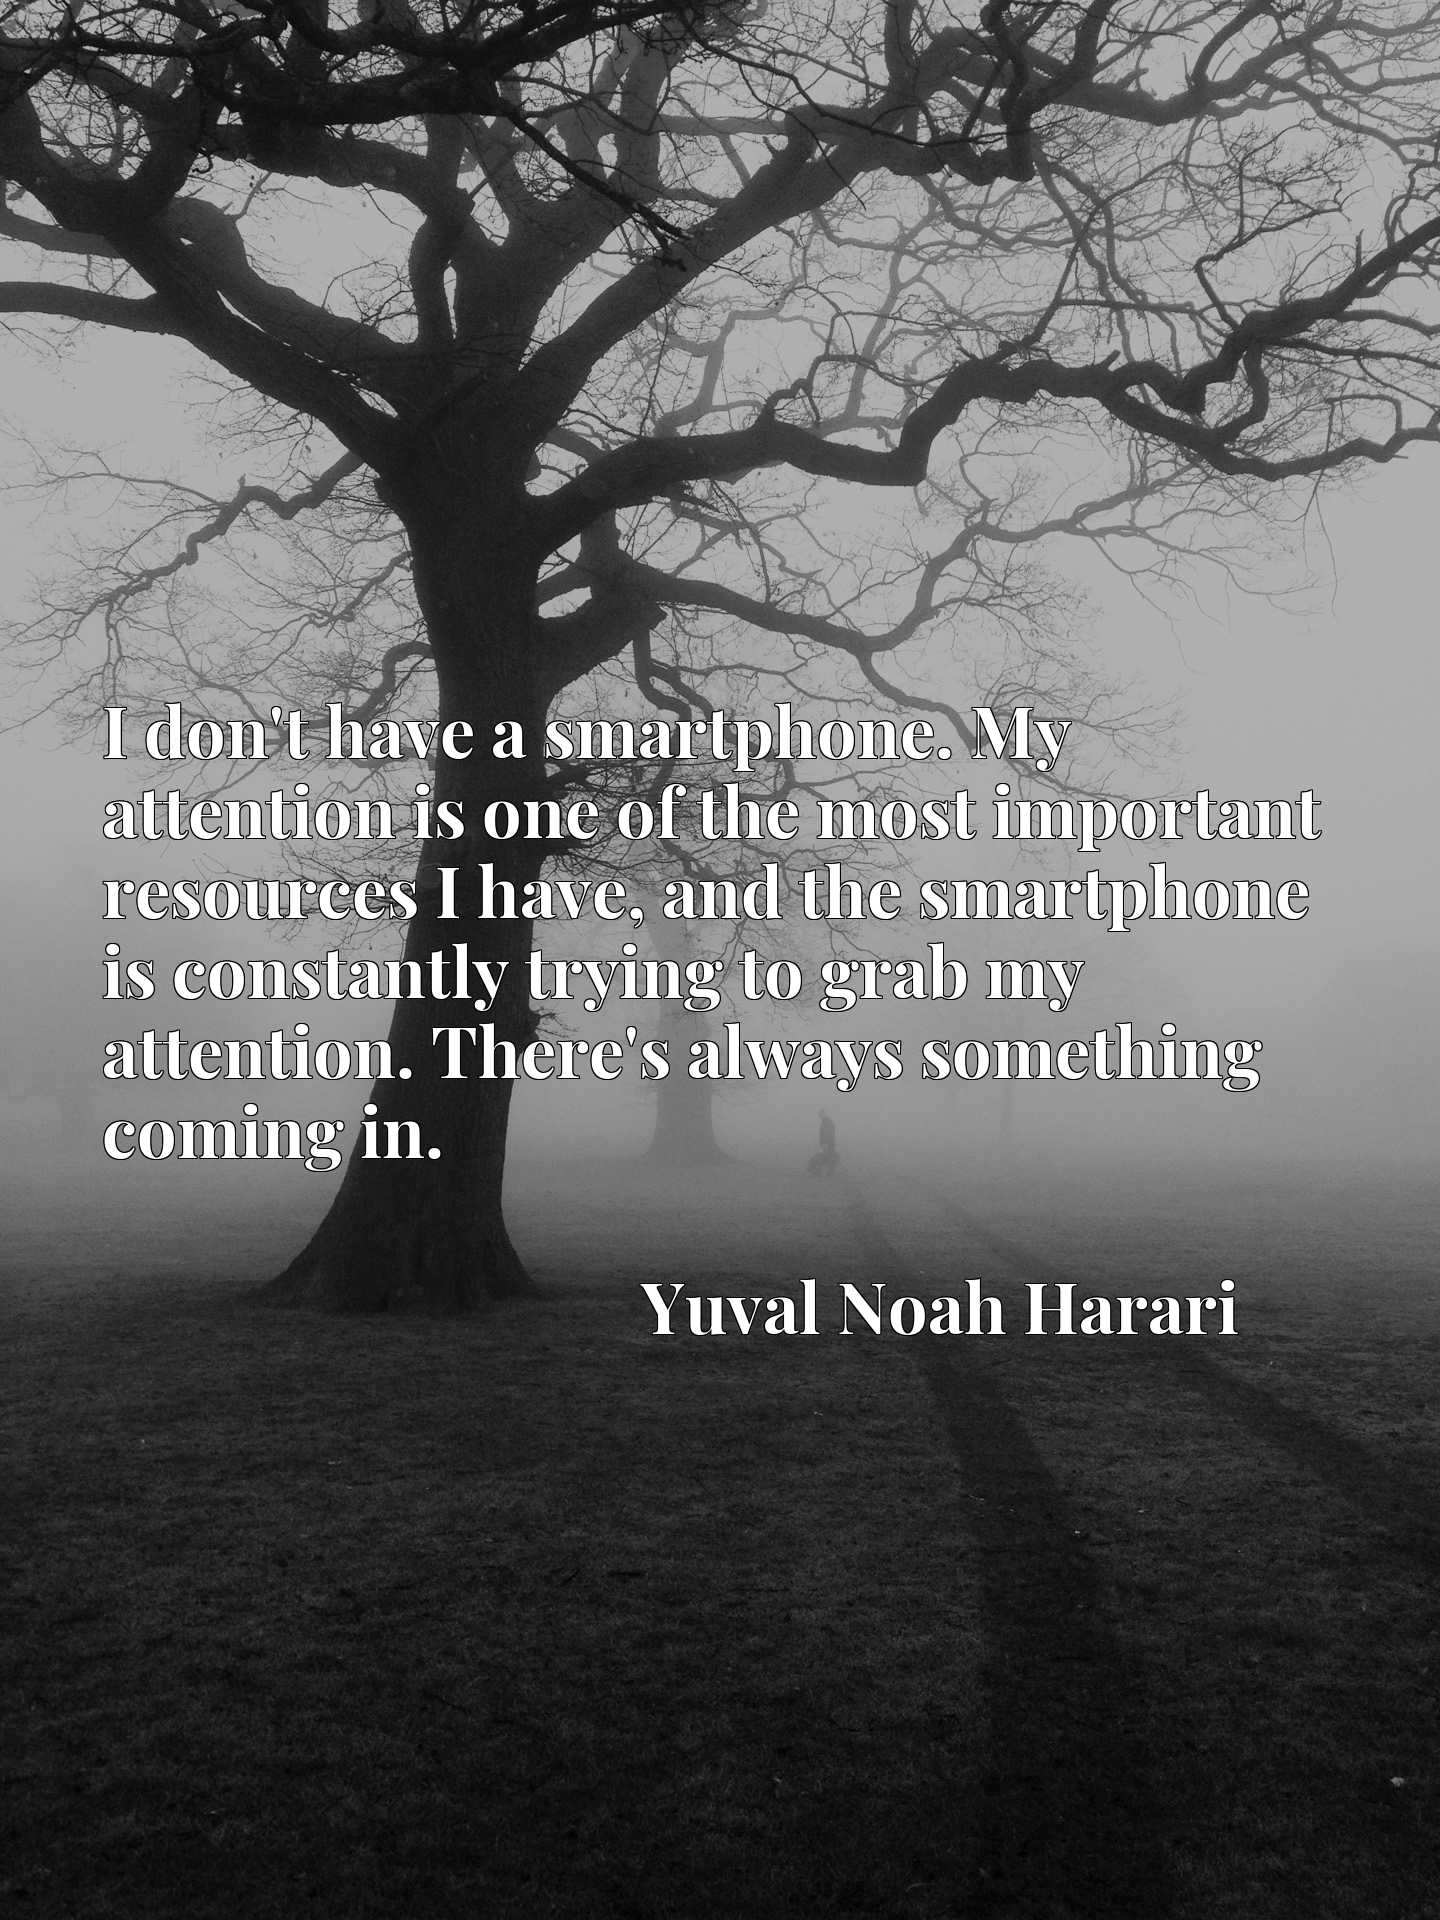 I don't have a smartphone. My attention is one of the most important resources I have, and the smartphone is constantly trying to grab my attention. There's always something coming in.